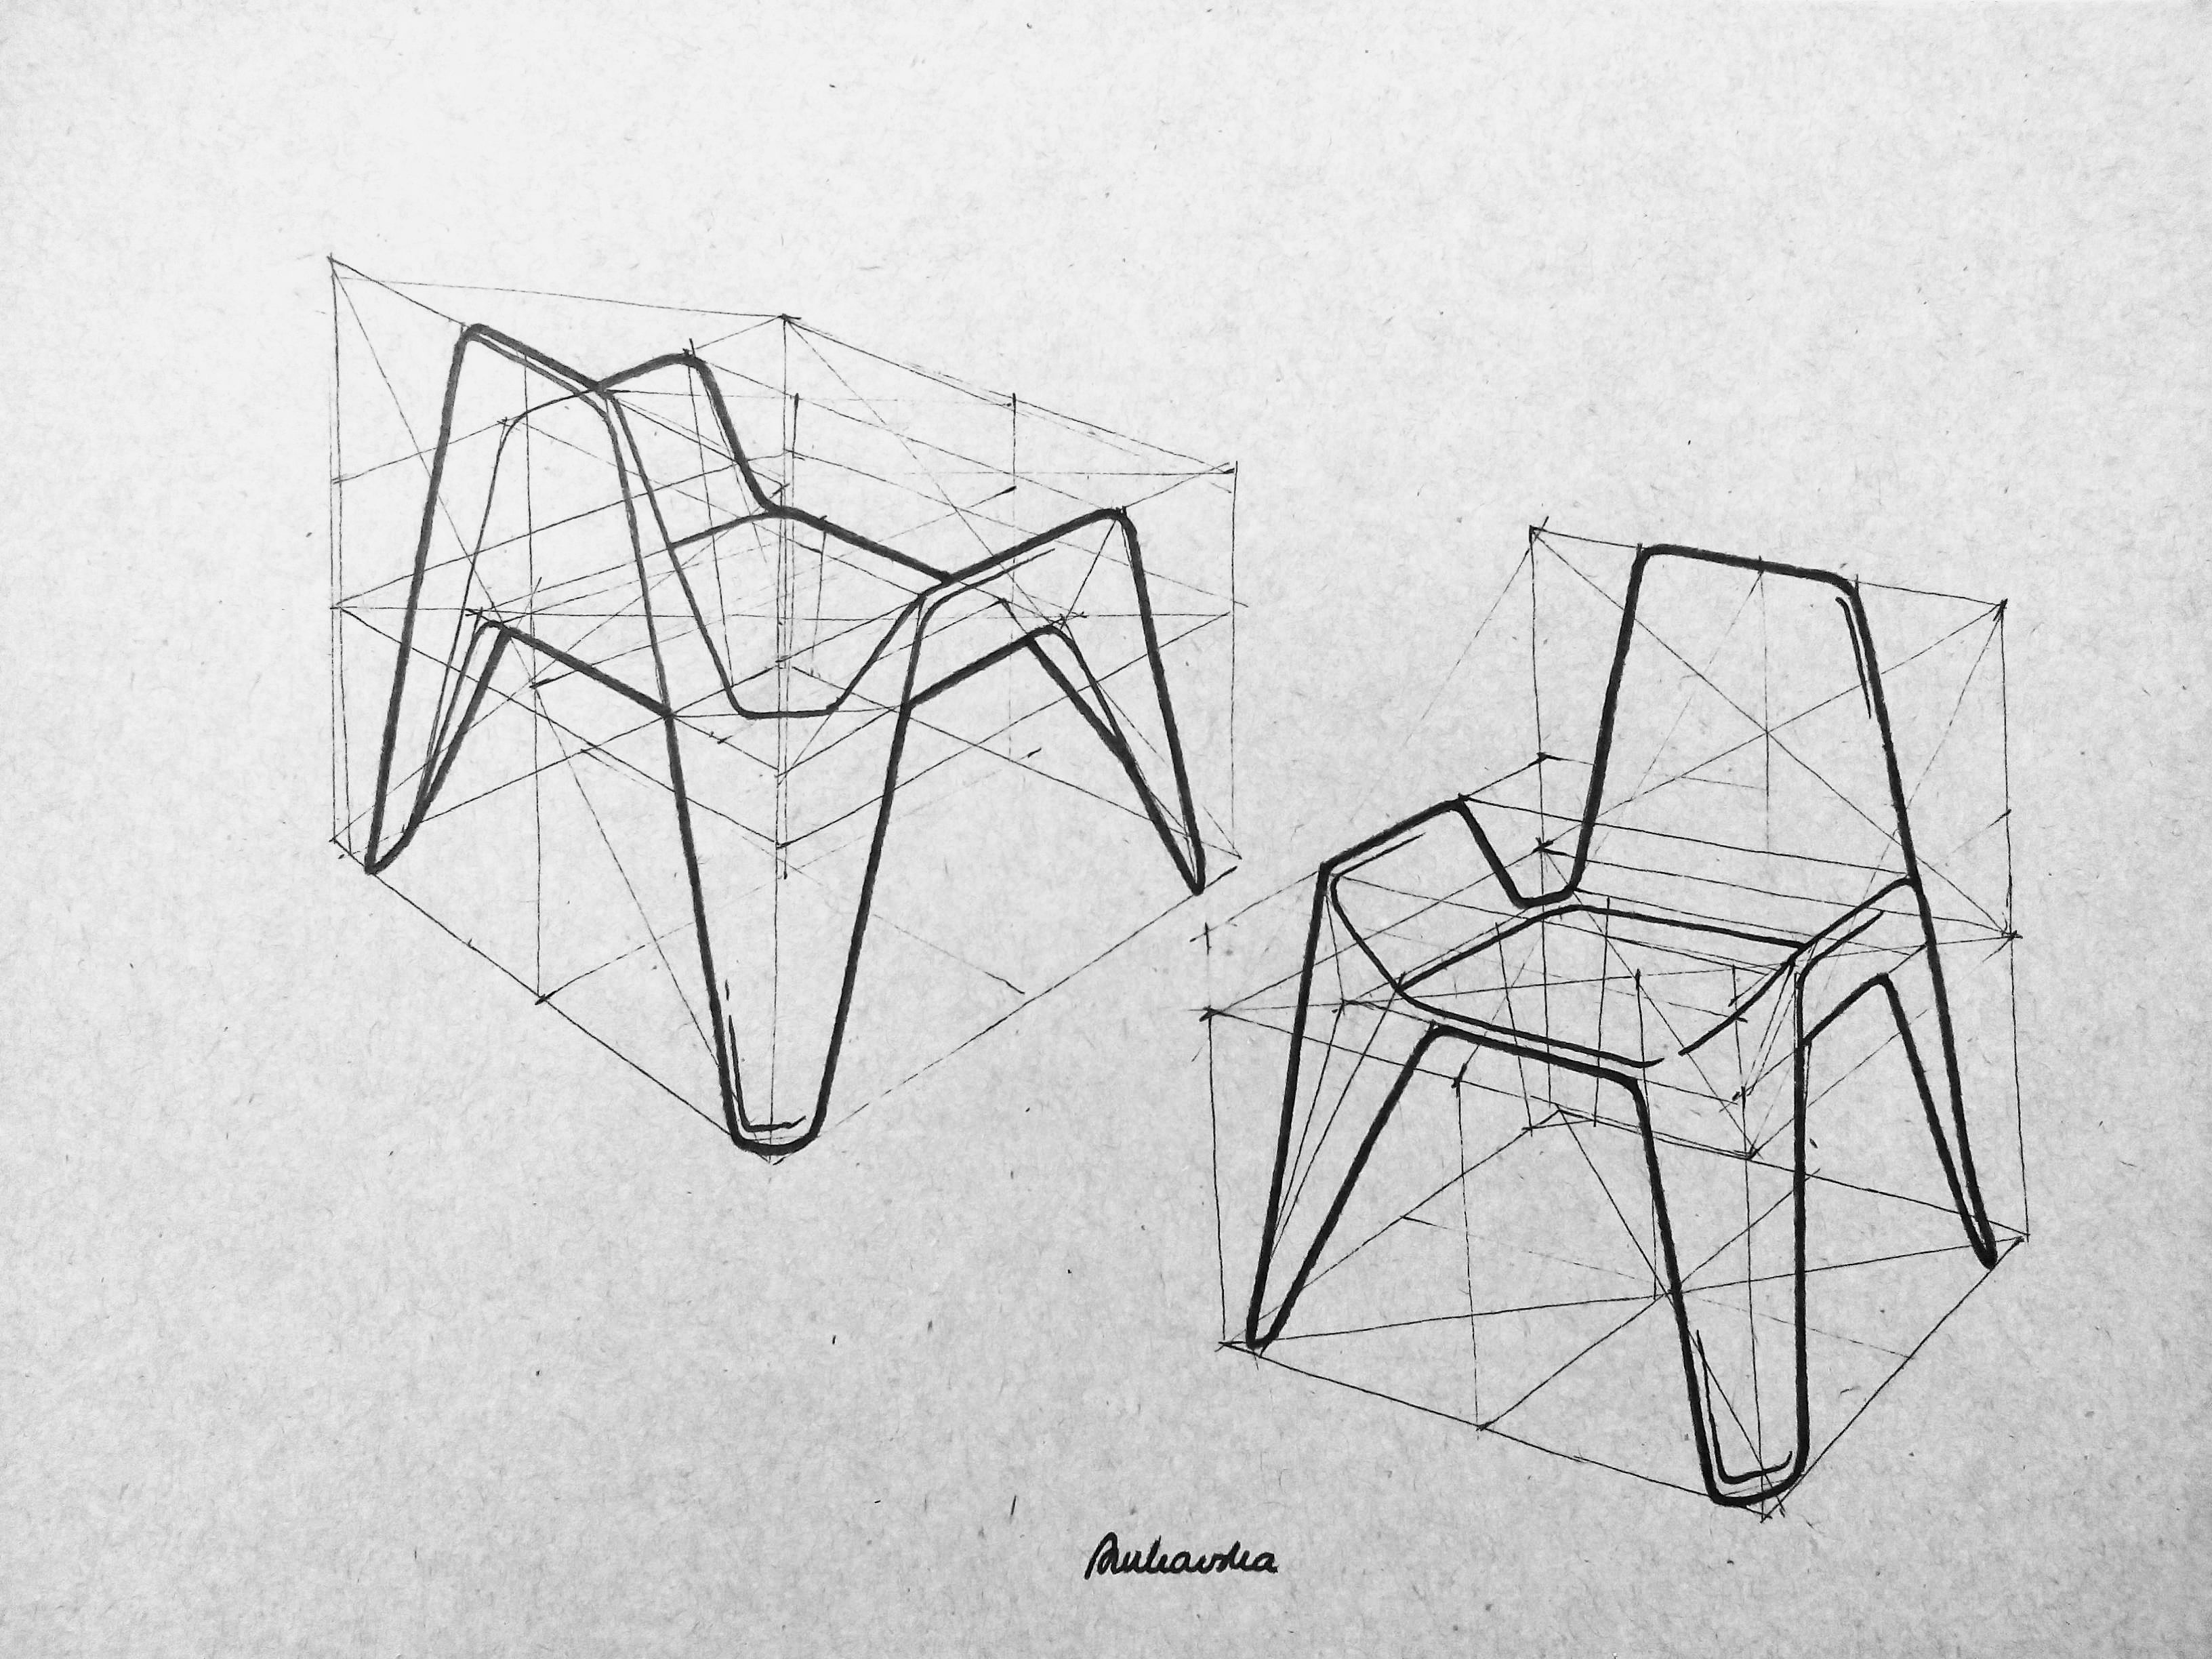 Pin by Matt Harris on Furniture Design (With images ...